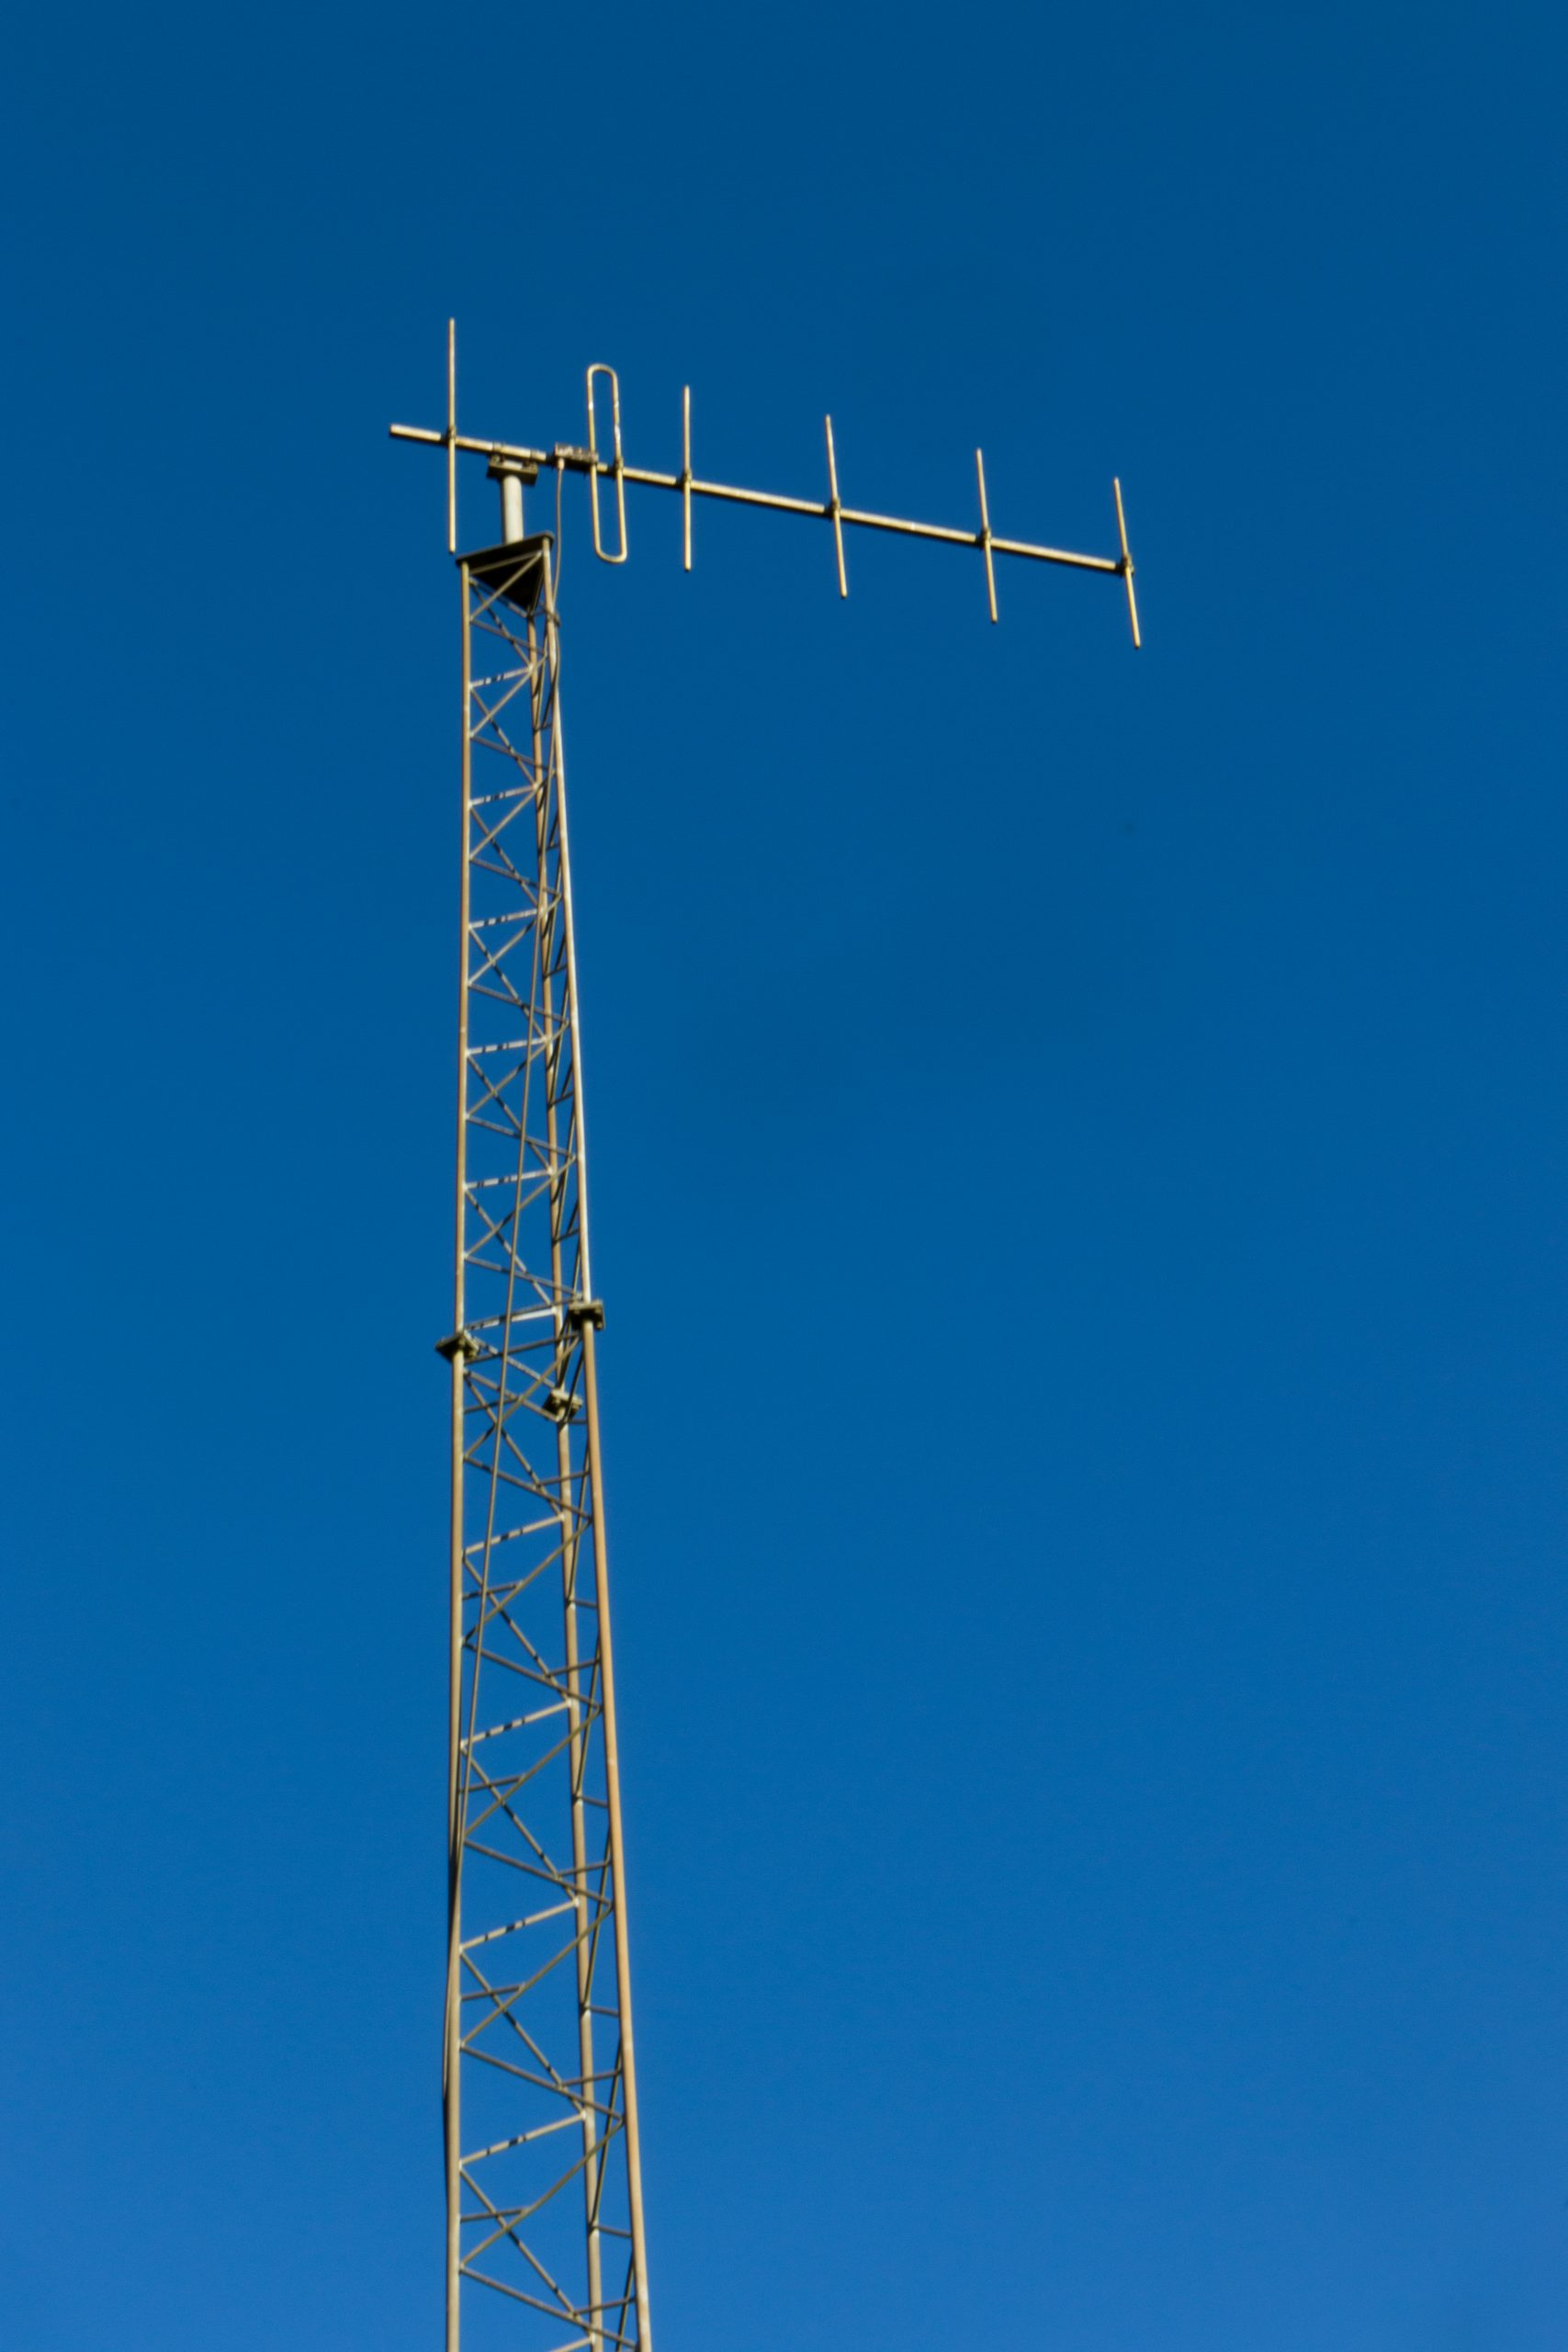 A communication tower